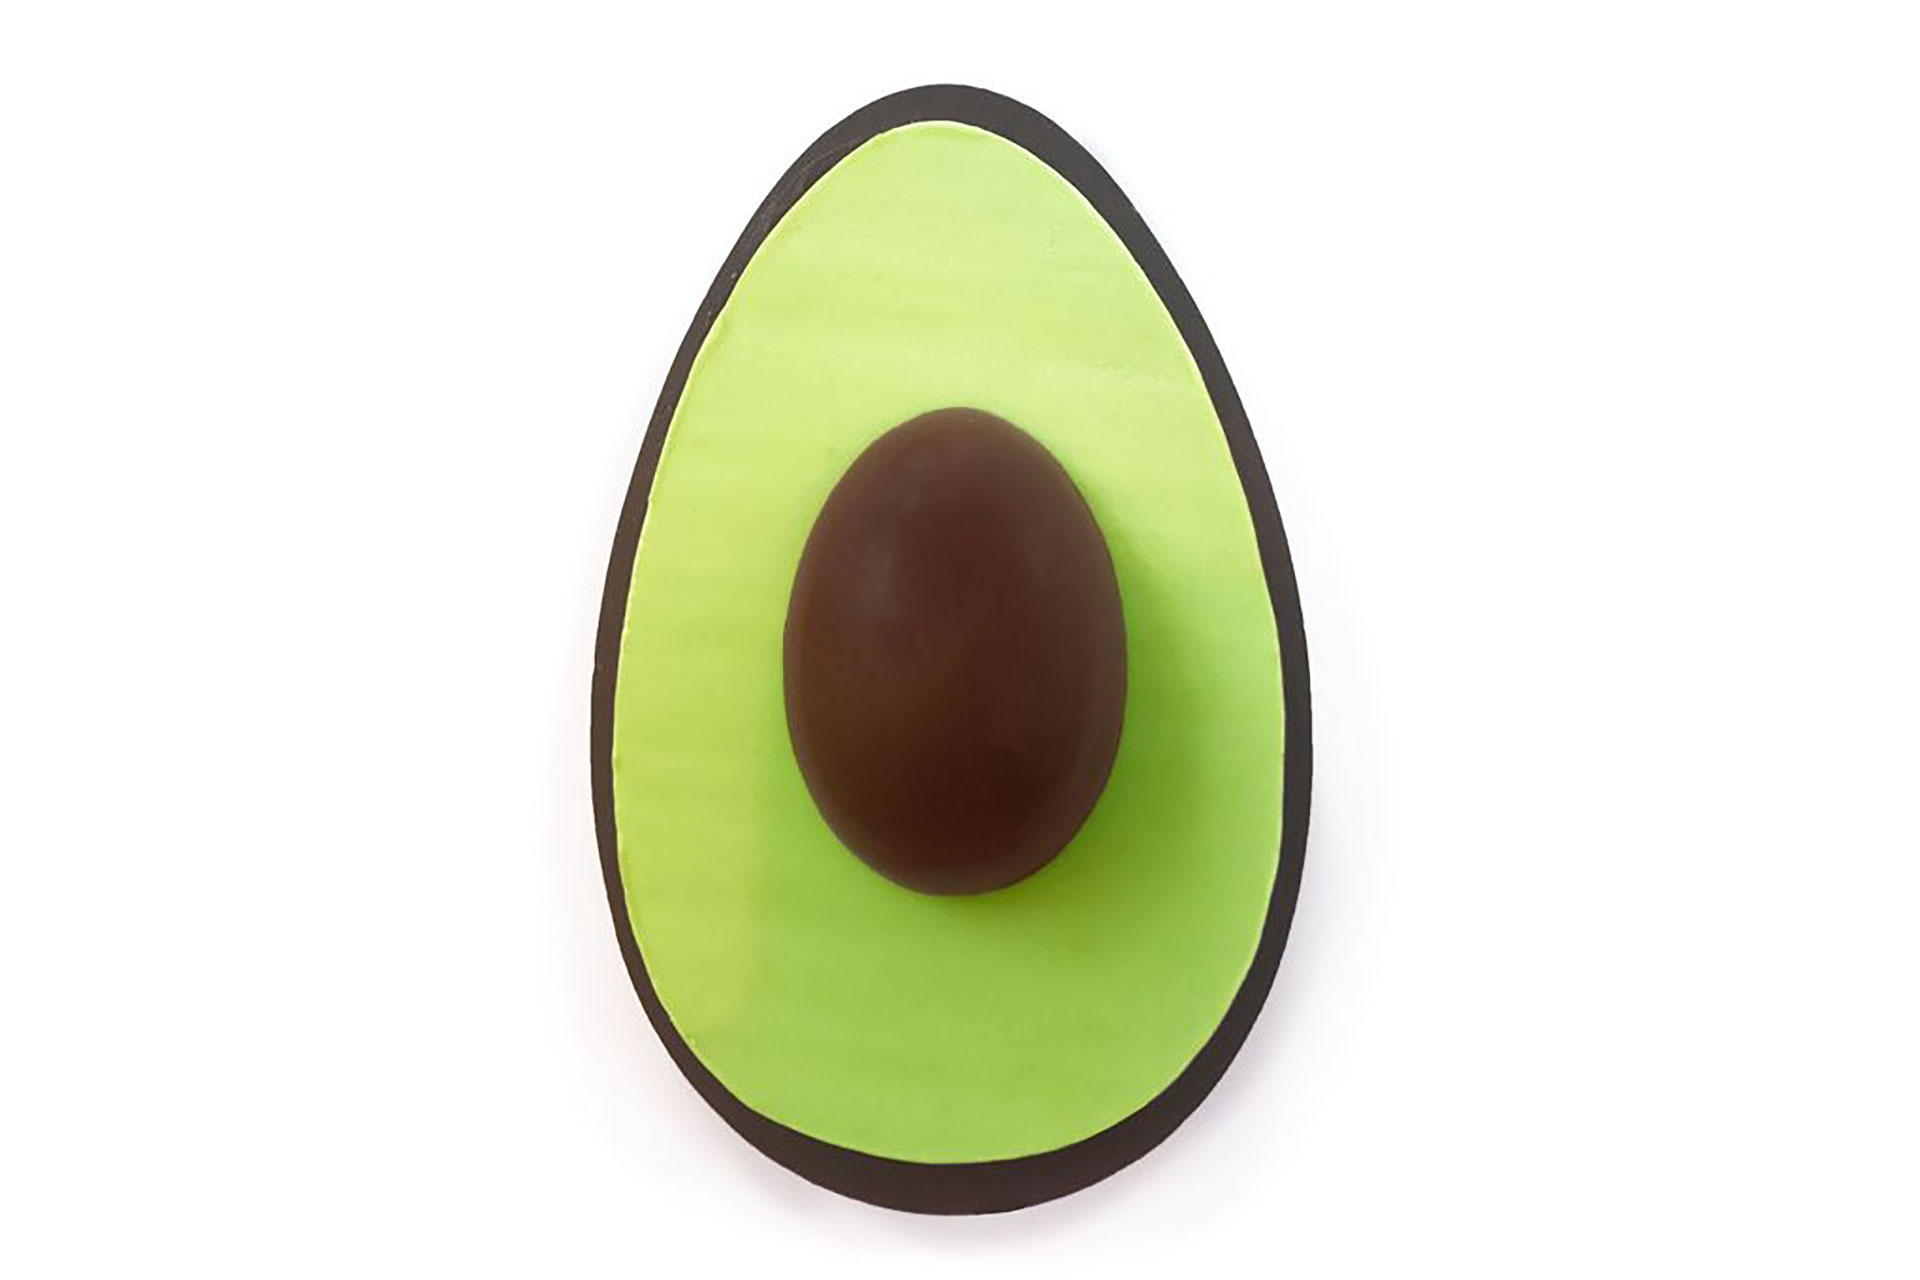 El Melt London Dark Chocolate Avocado Egg sale 49, 50 libras, es decir, 938 pesos